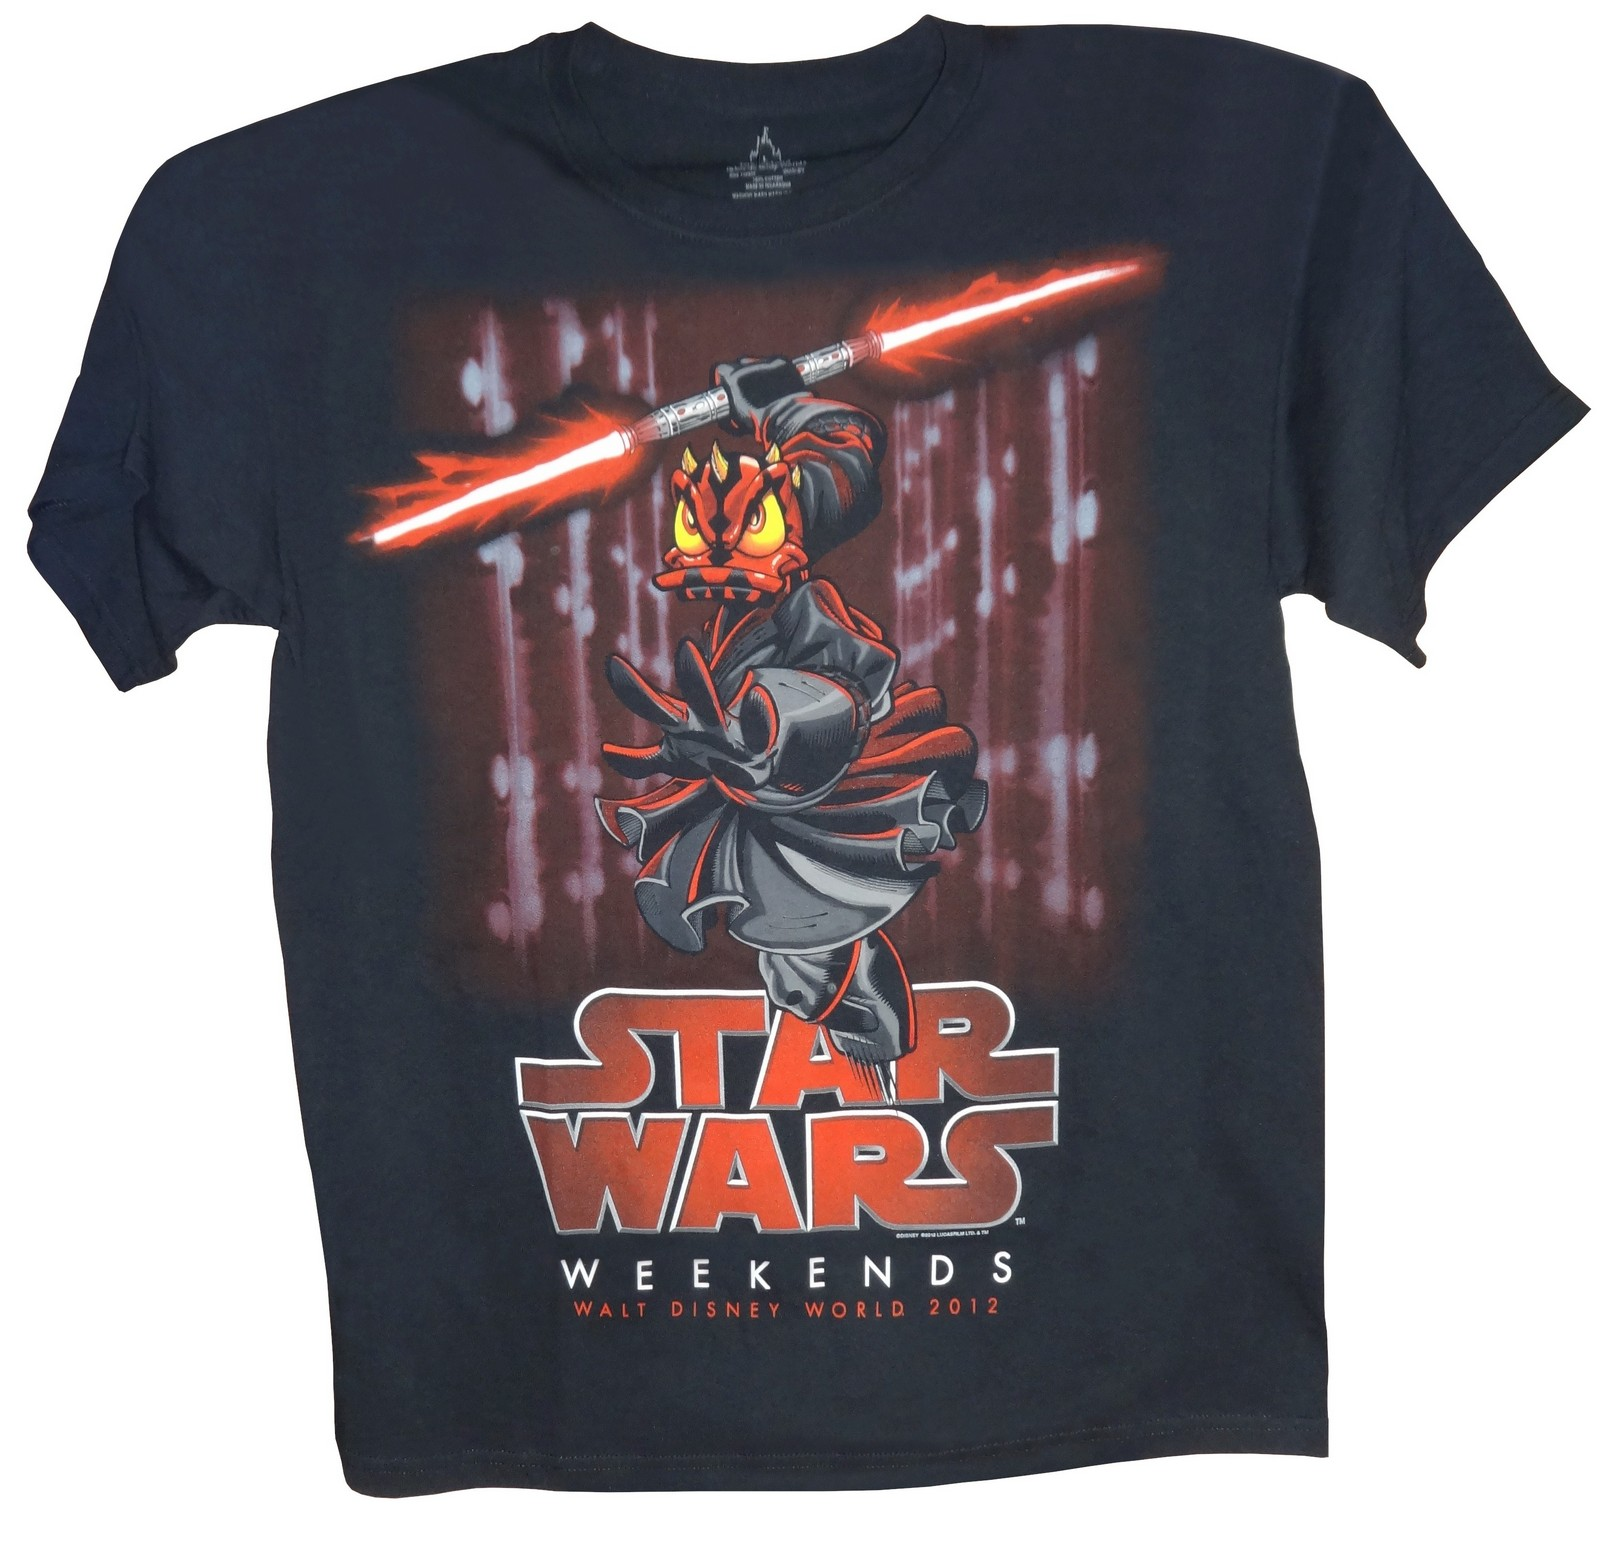 Original One of a kind Prototype Logo T-shirt Disney Star Wars Weekends 2012